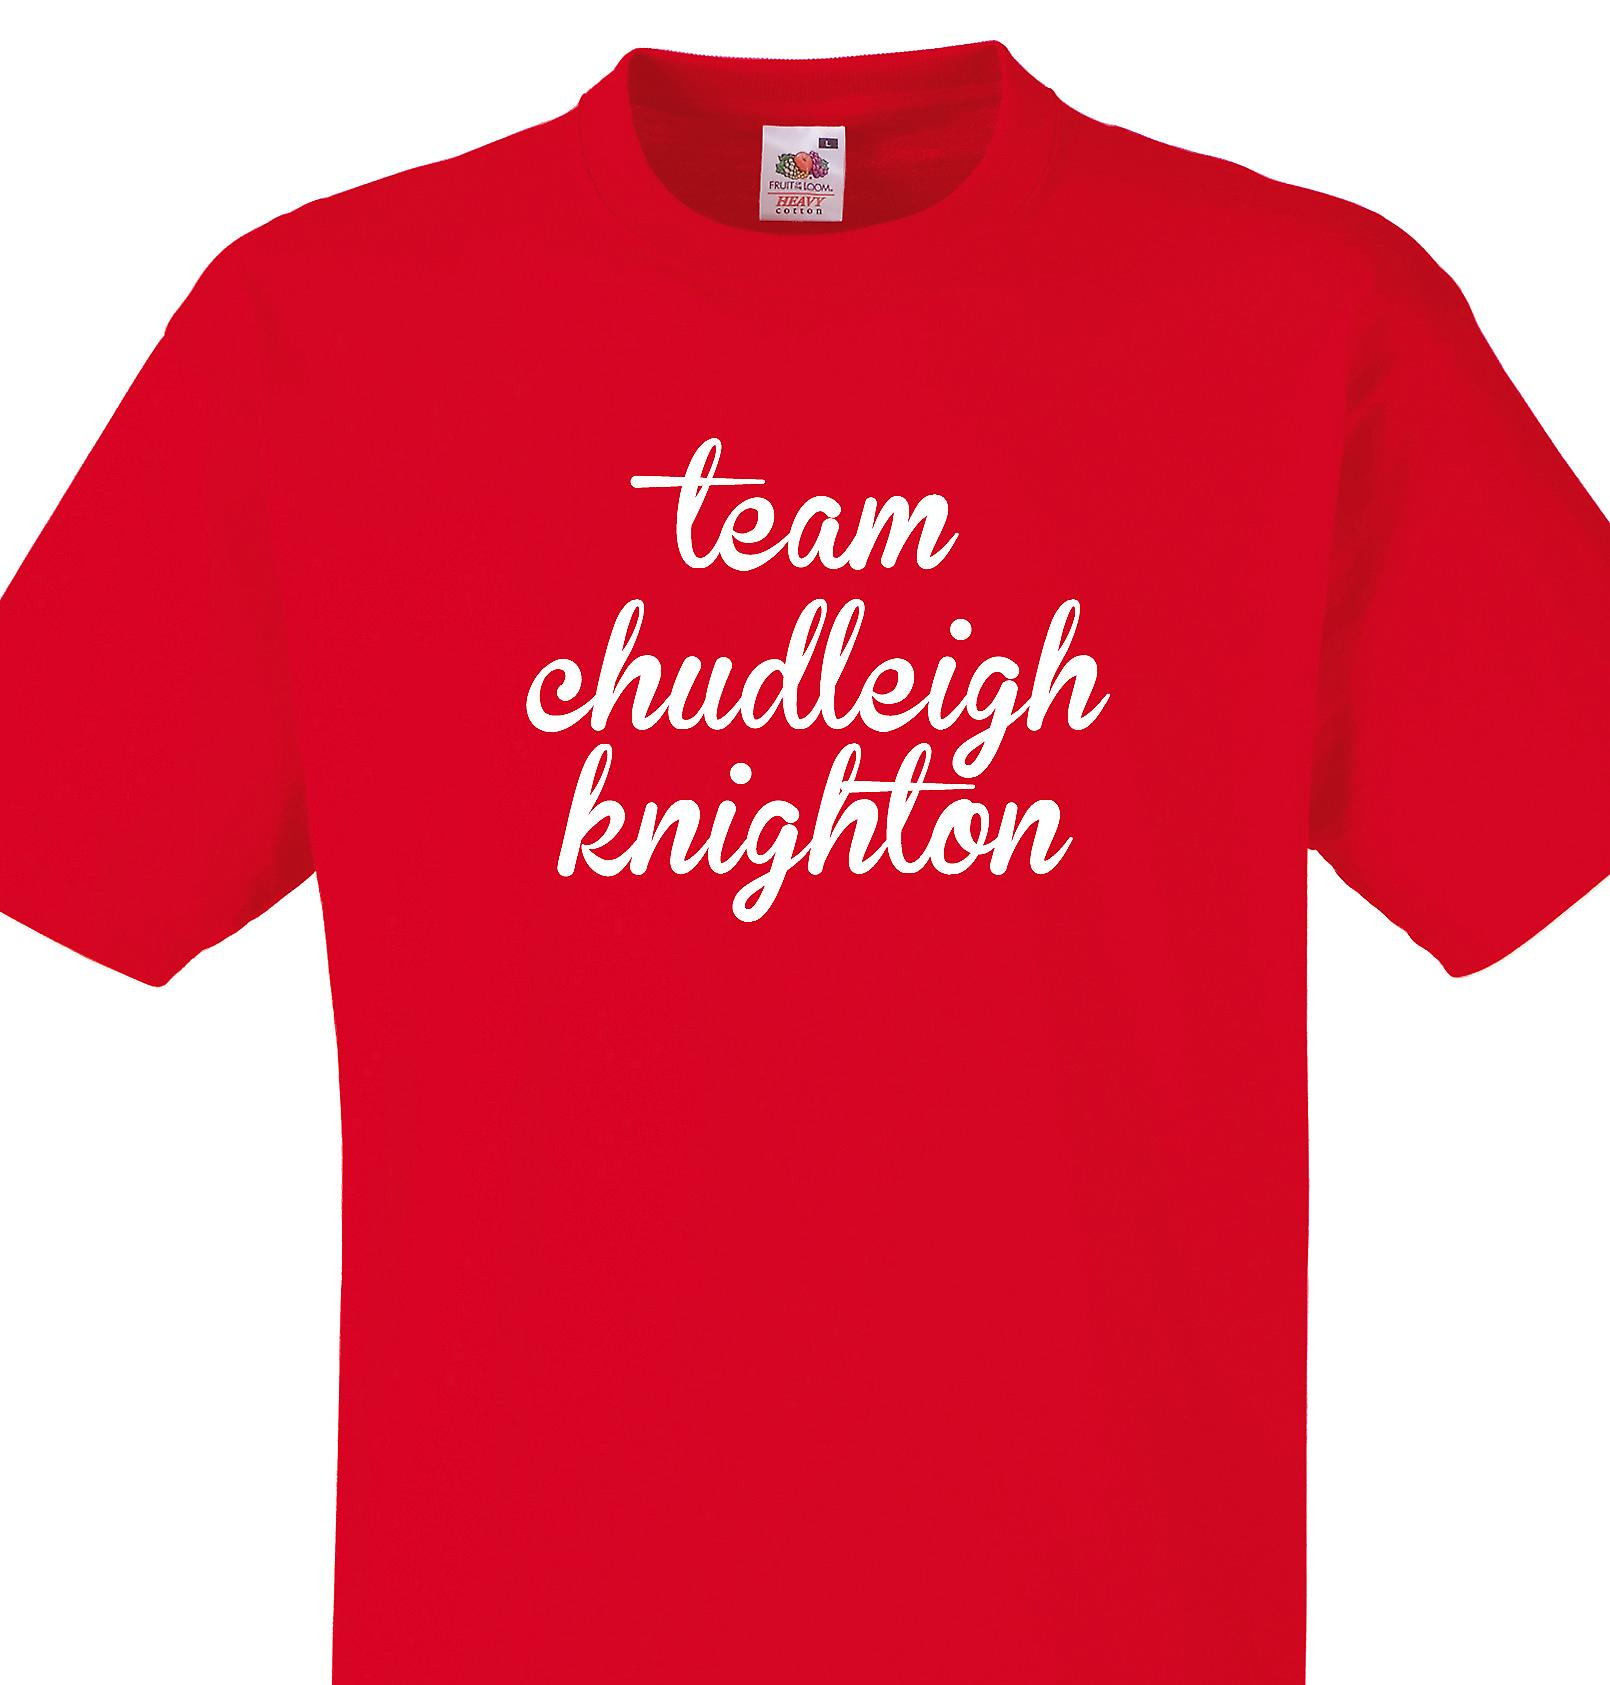 Team Chudleigh knighton Red T shirt